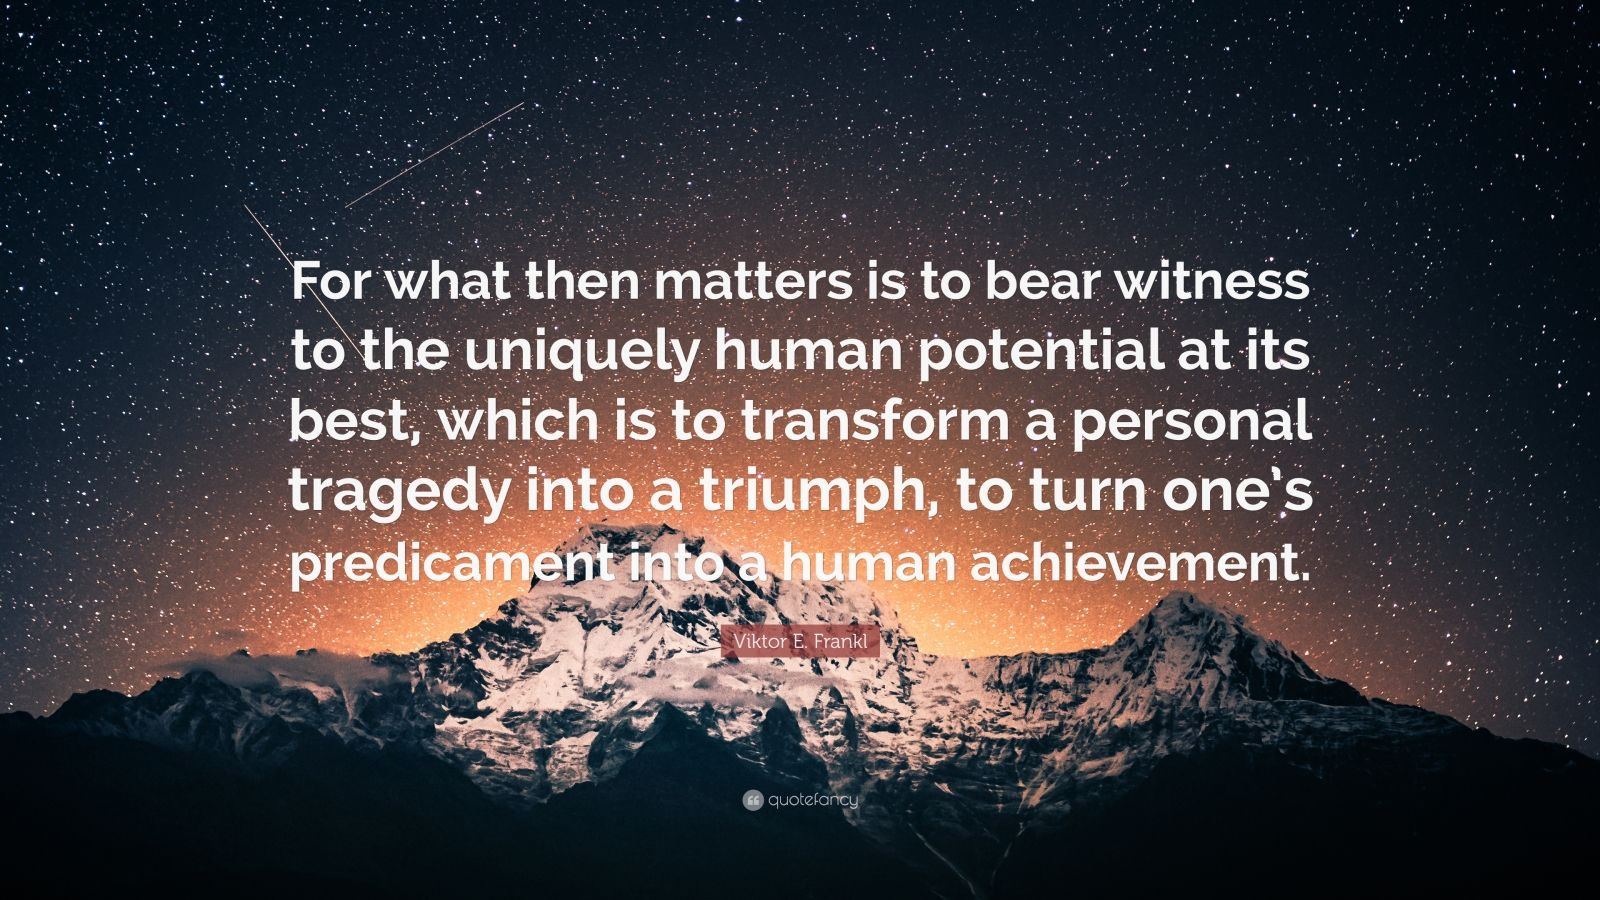 """Viktor E. Frankl Quote: """"For what then matters is to bear witness to the uniquely human potential at its best, which is to transform a personal tragedy into a triumph, to turn one's predicament into a human achievement."""""""